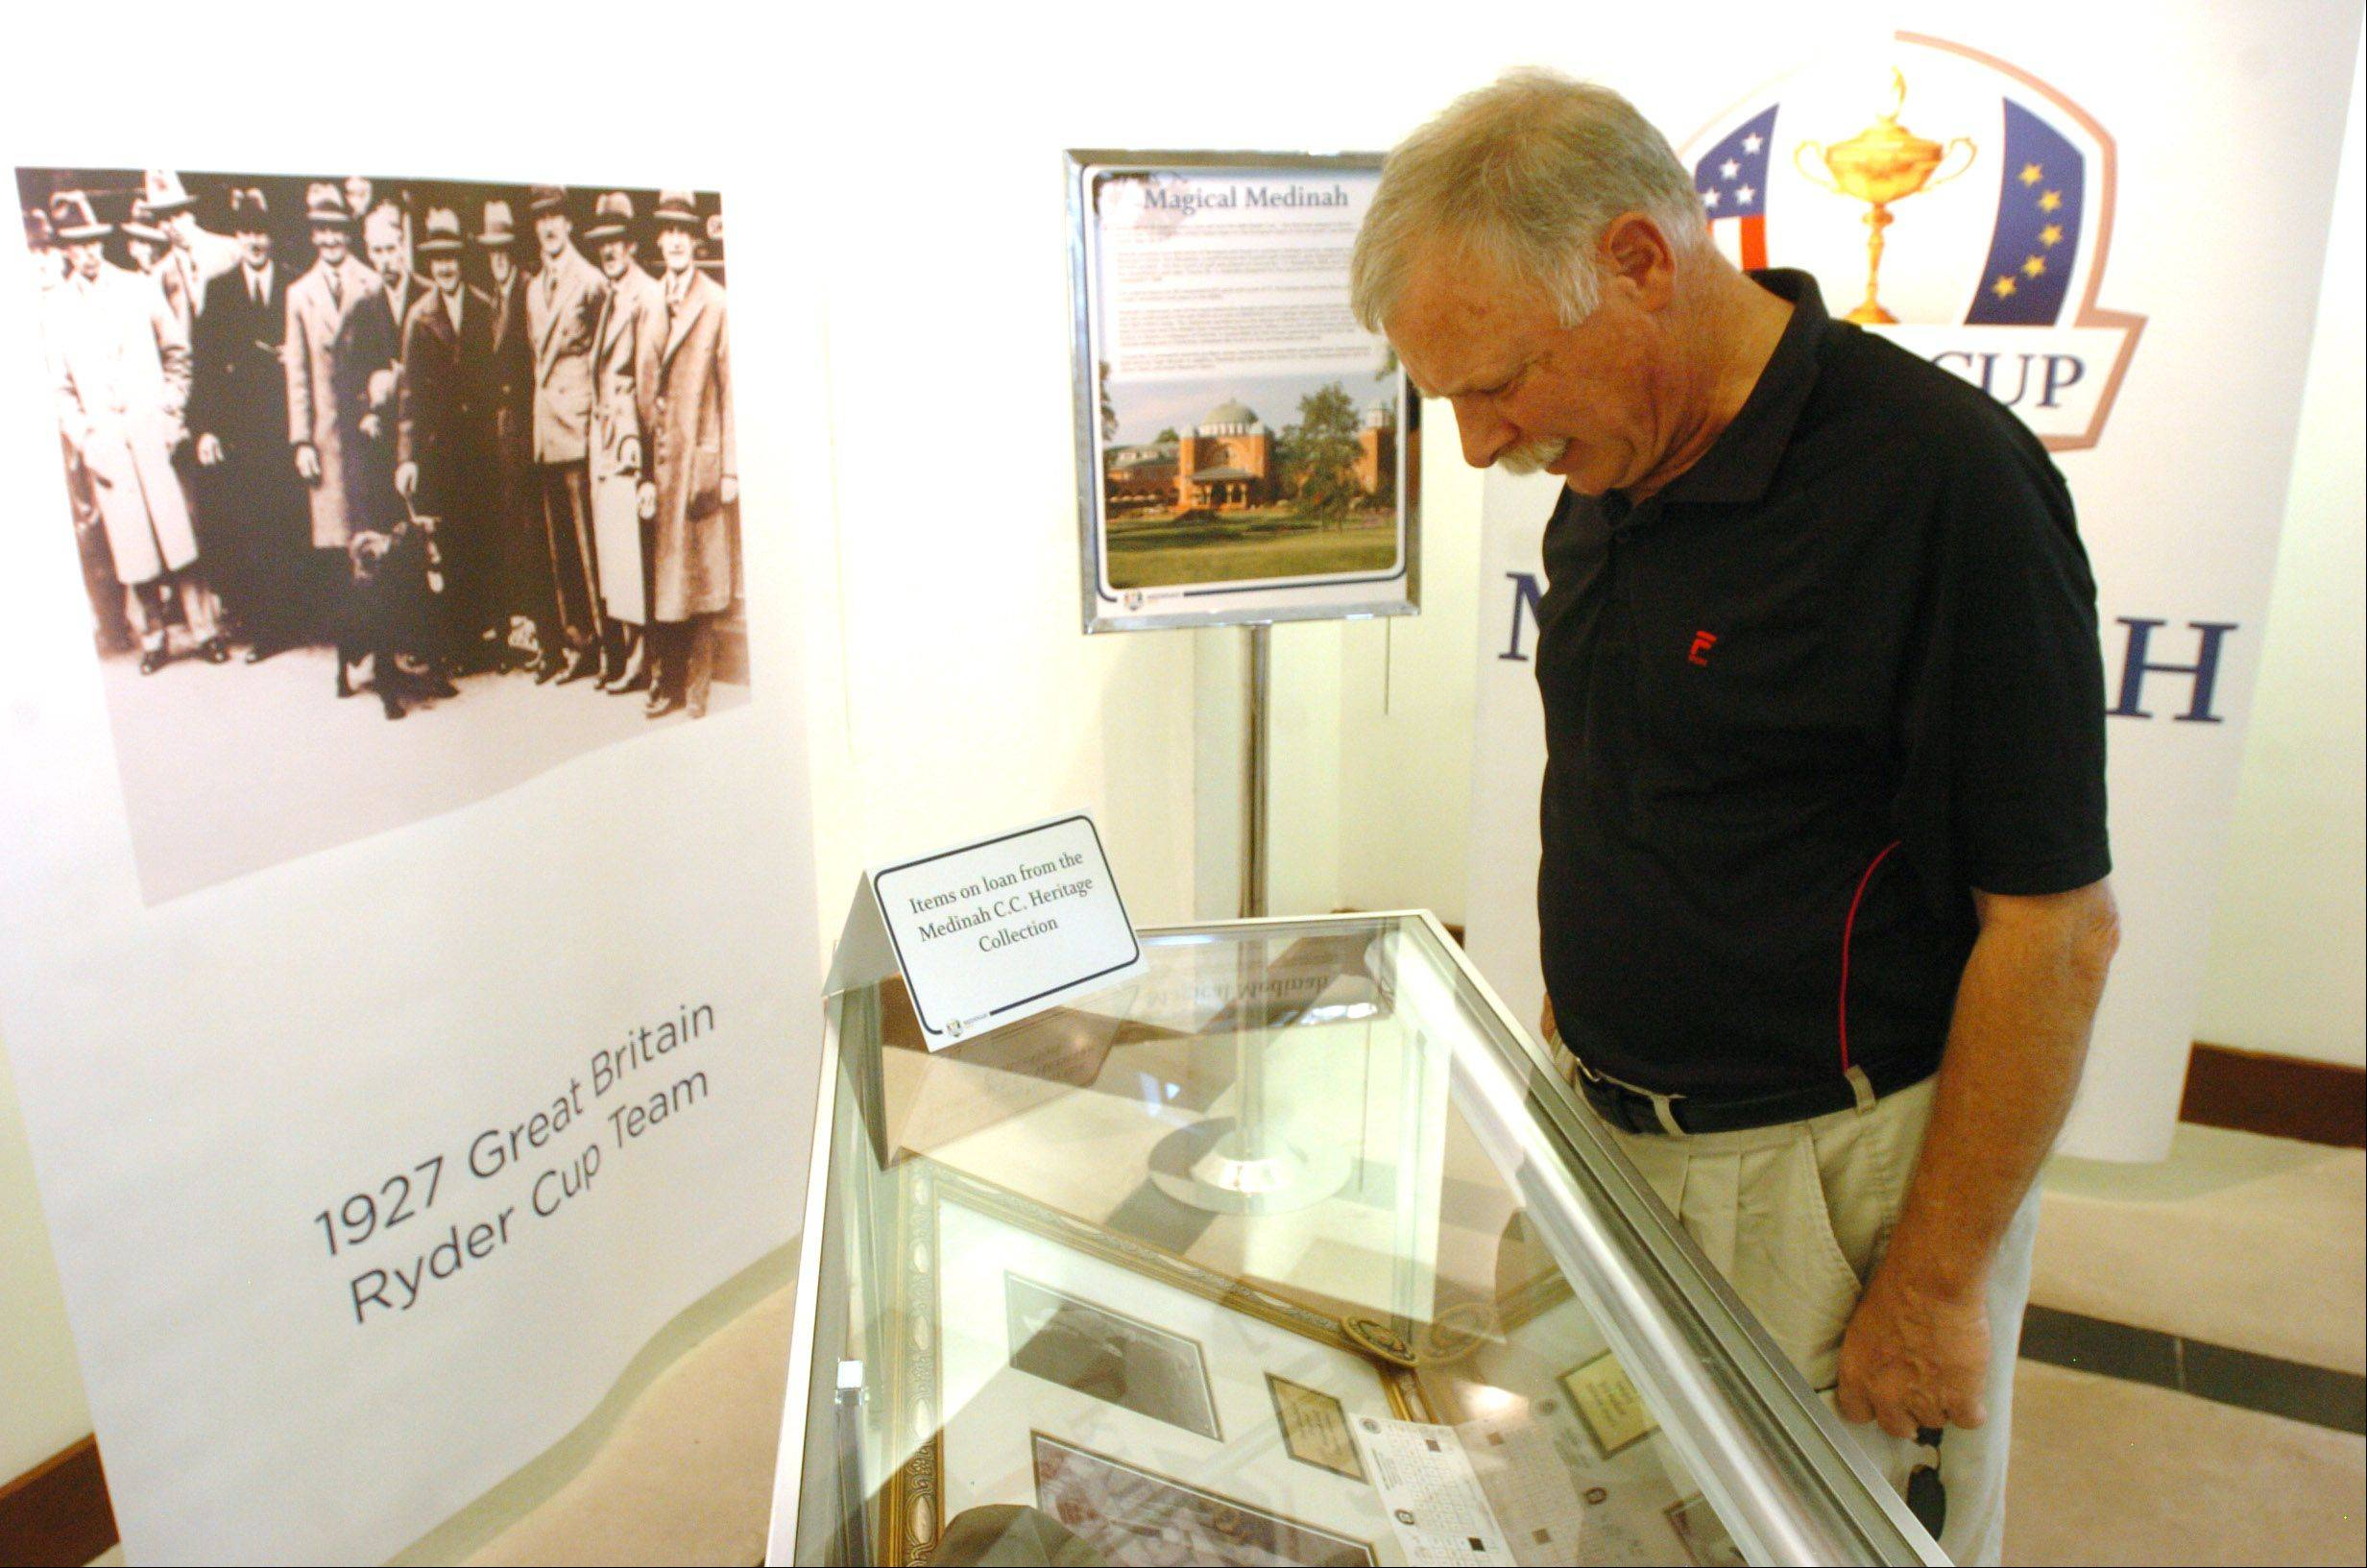 Trent Richards of Roselle checks out the historical data and items on display at the Ryder Cup Exhibit at Oakbrook Center.